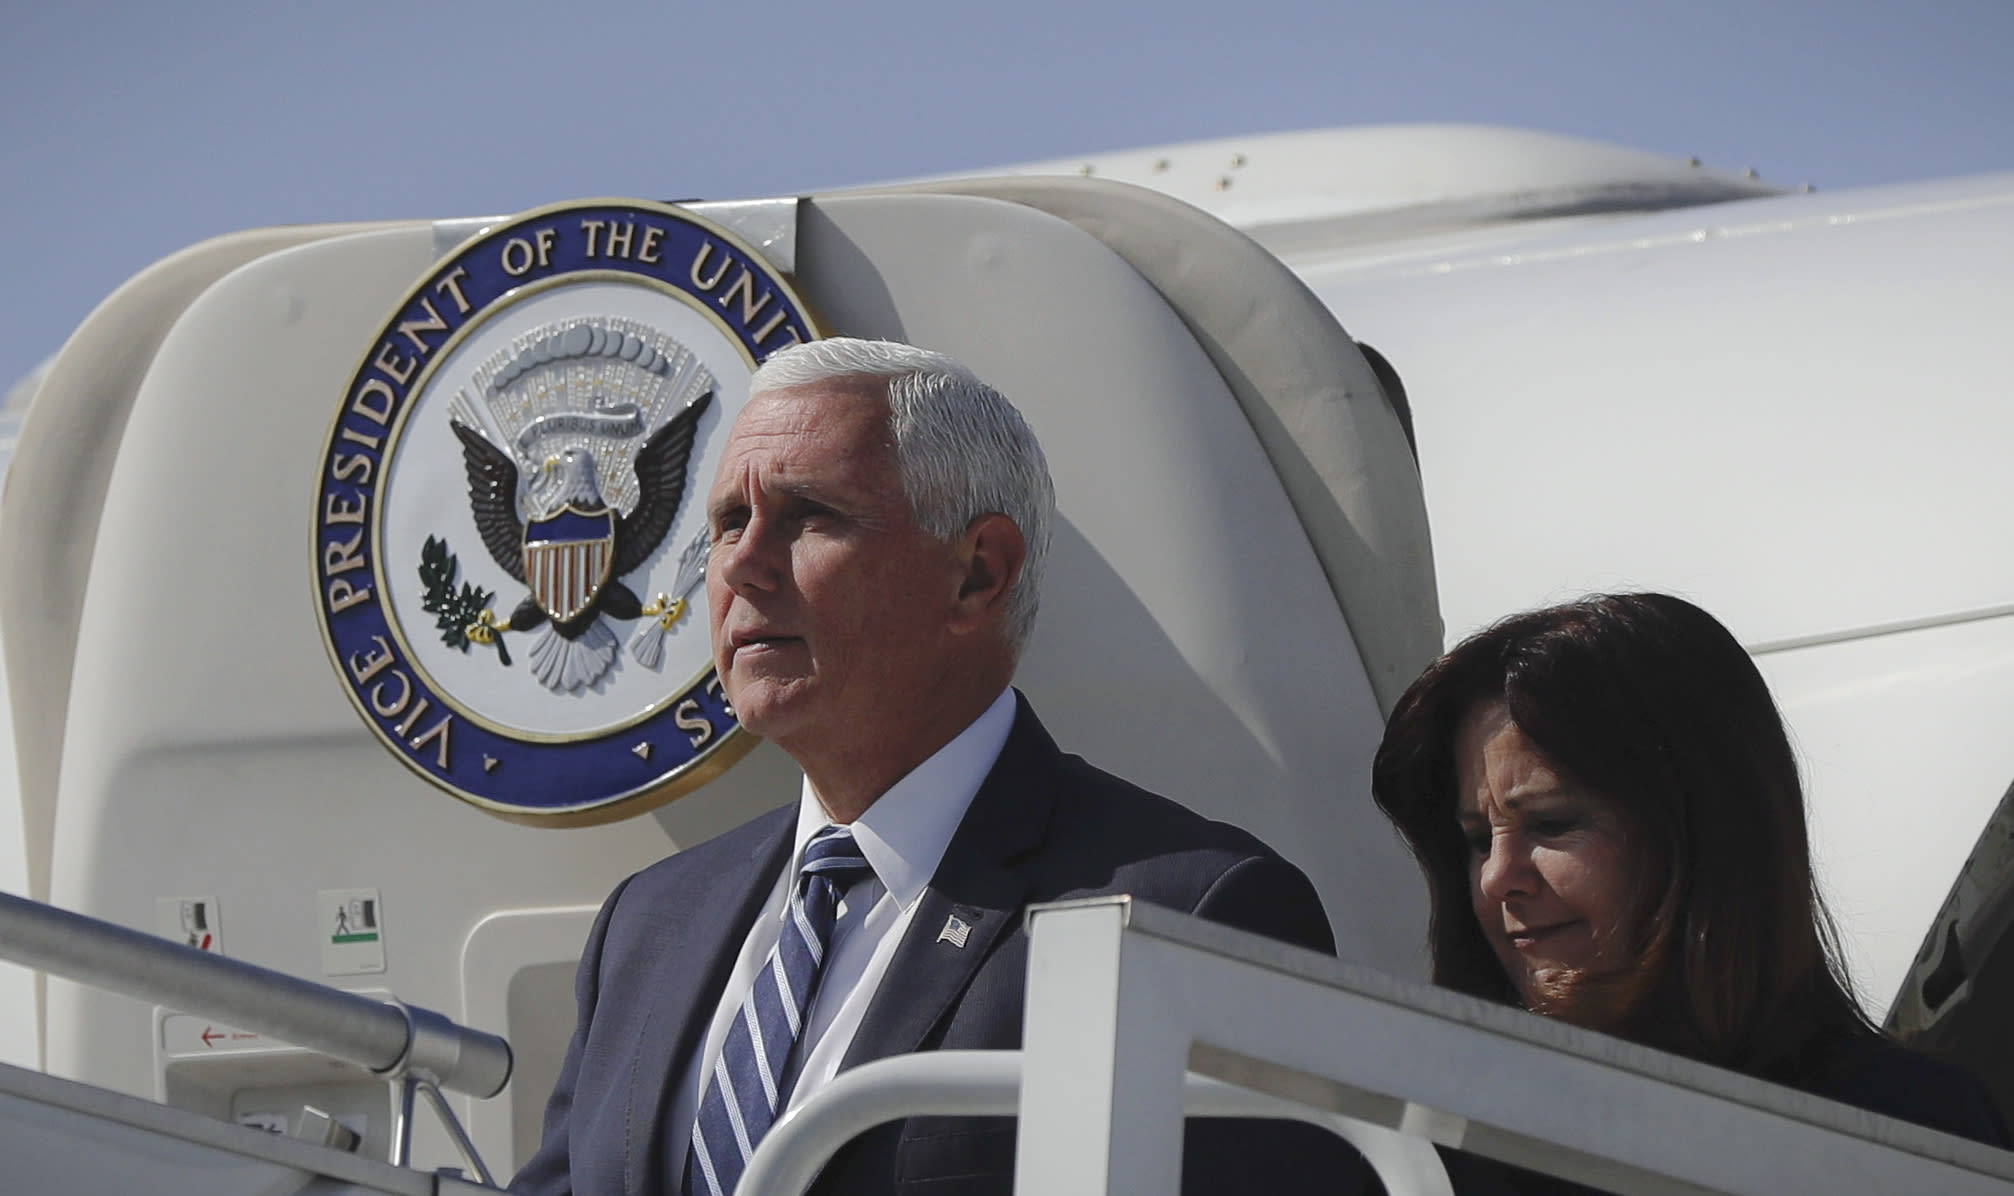 U.S. Vice President Mike Pence and his wife Karen exit the plane after landing in Warsaw, Poland, Sunday, Sept. 1, 2019. Pence will attend a memorial ceremony marking the 80th anniversary of the start of World War II. (AP Photo/Petr David Josek)